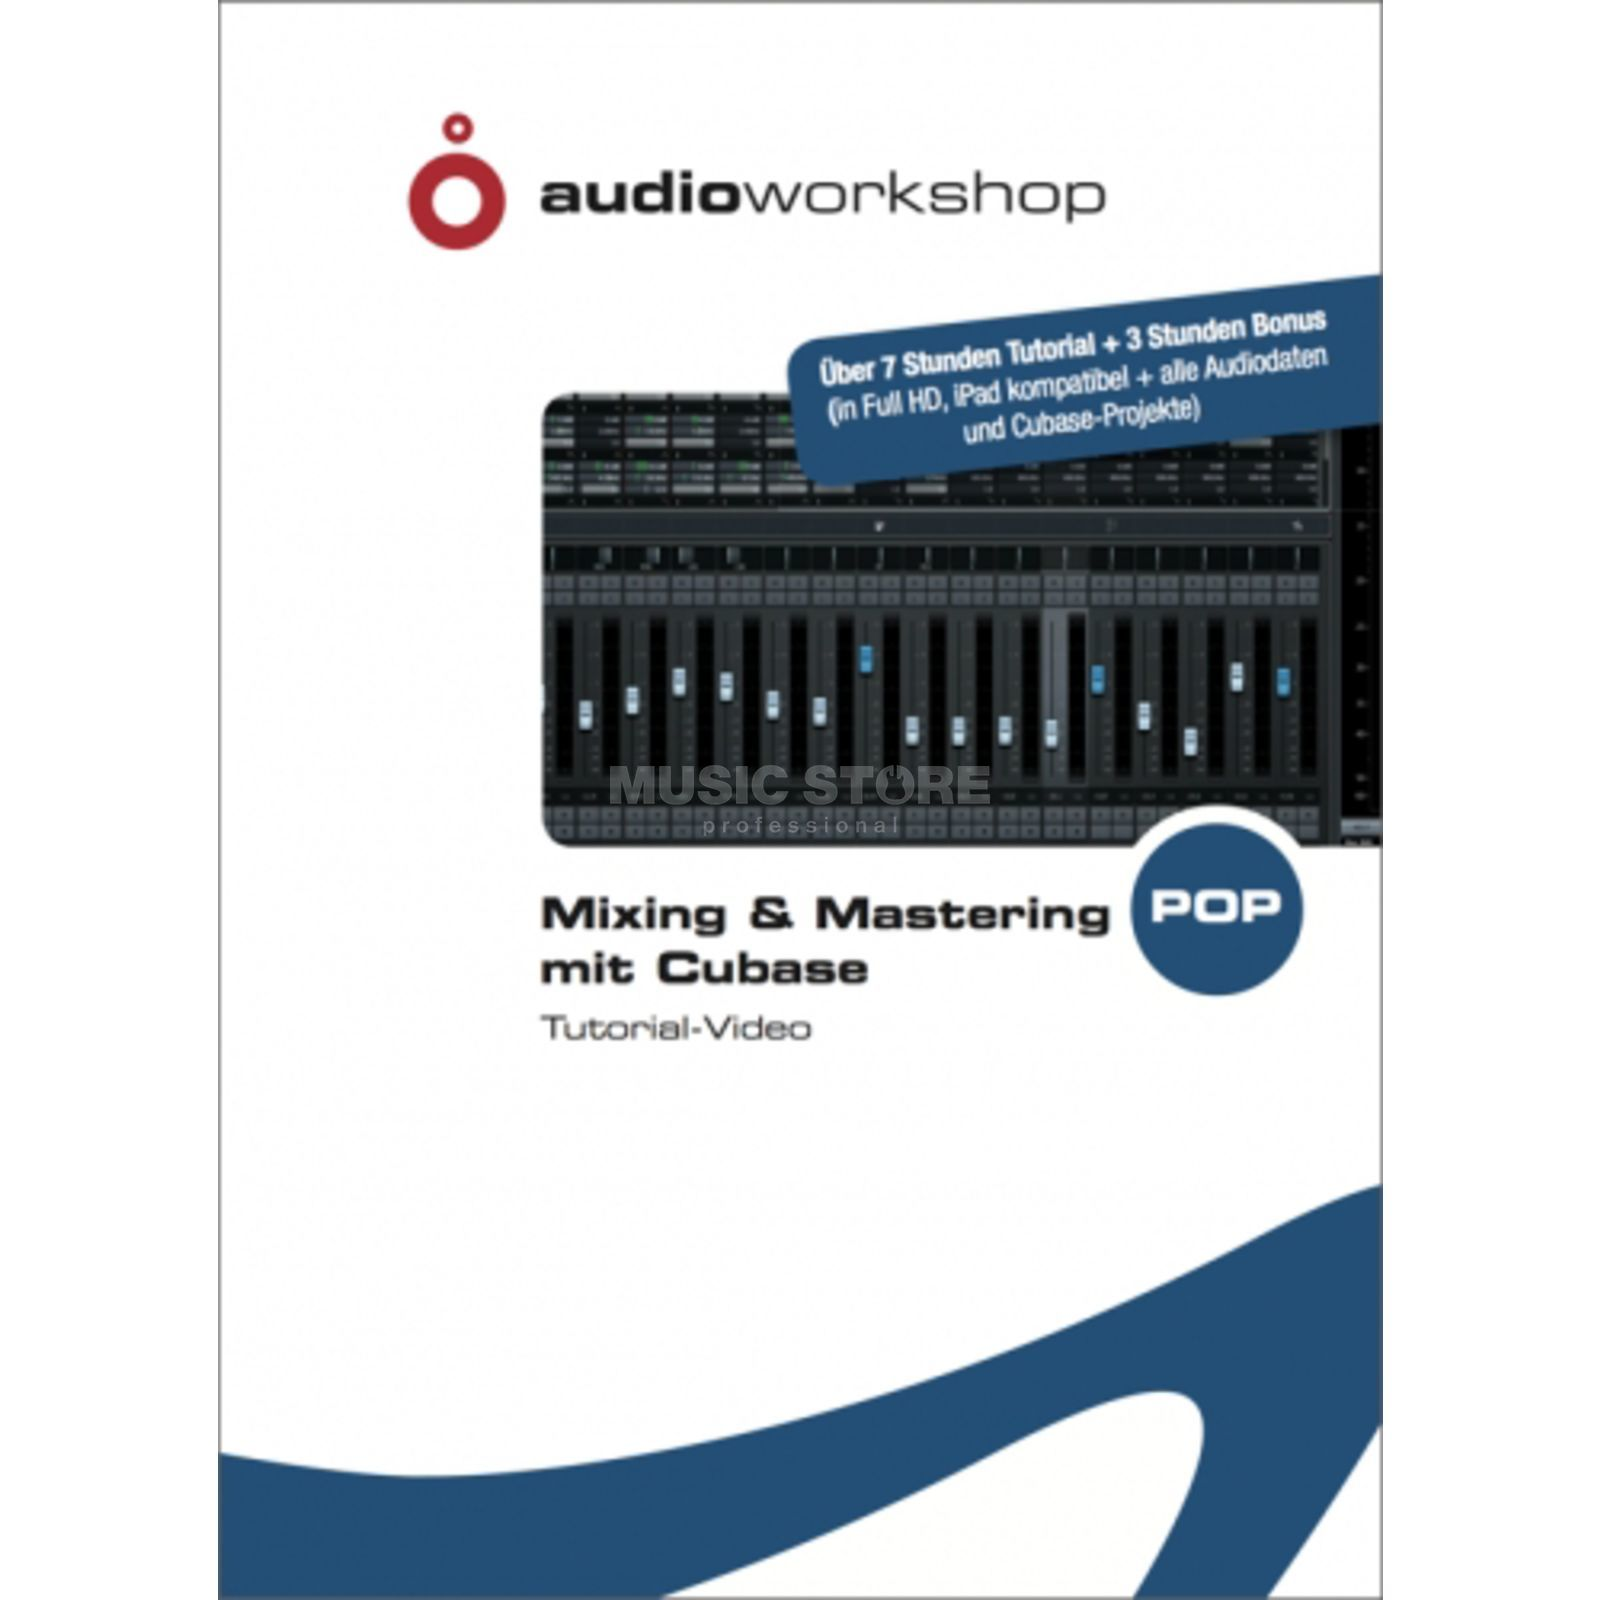 Audio Workshop Mixing & Mastering DVD mit Cubase Tutorial-Video Produktbild